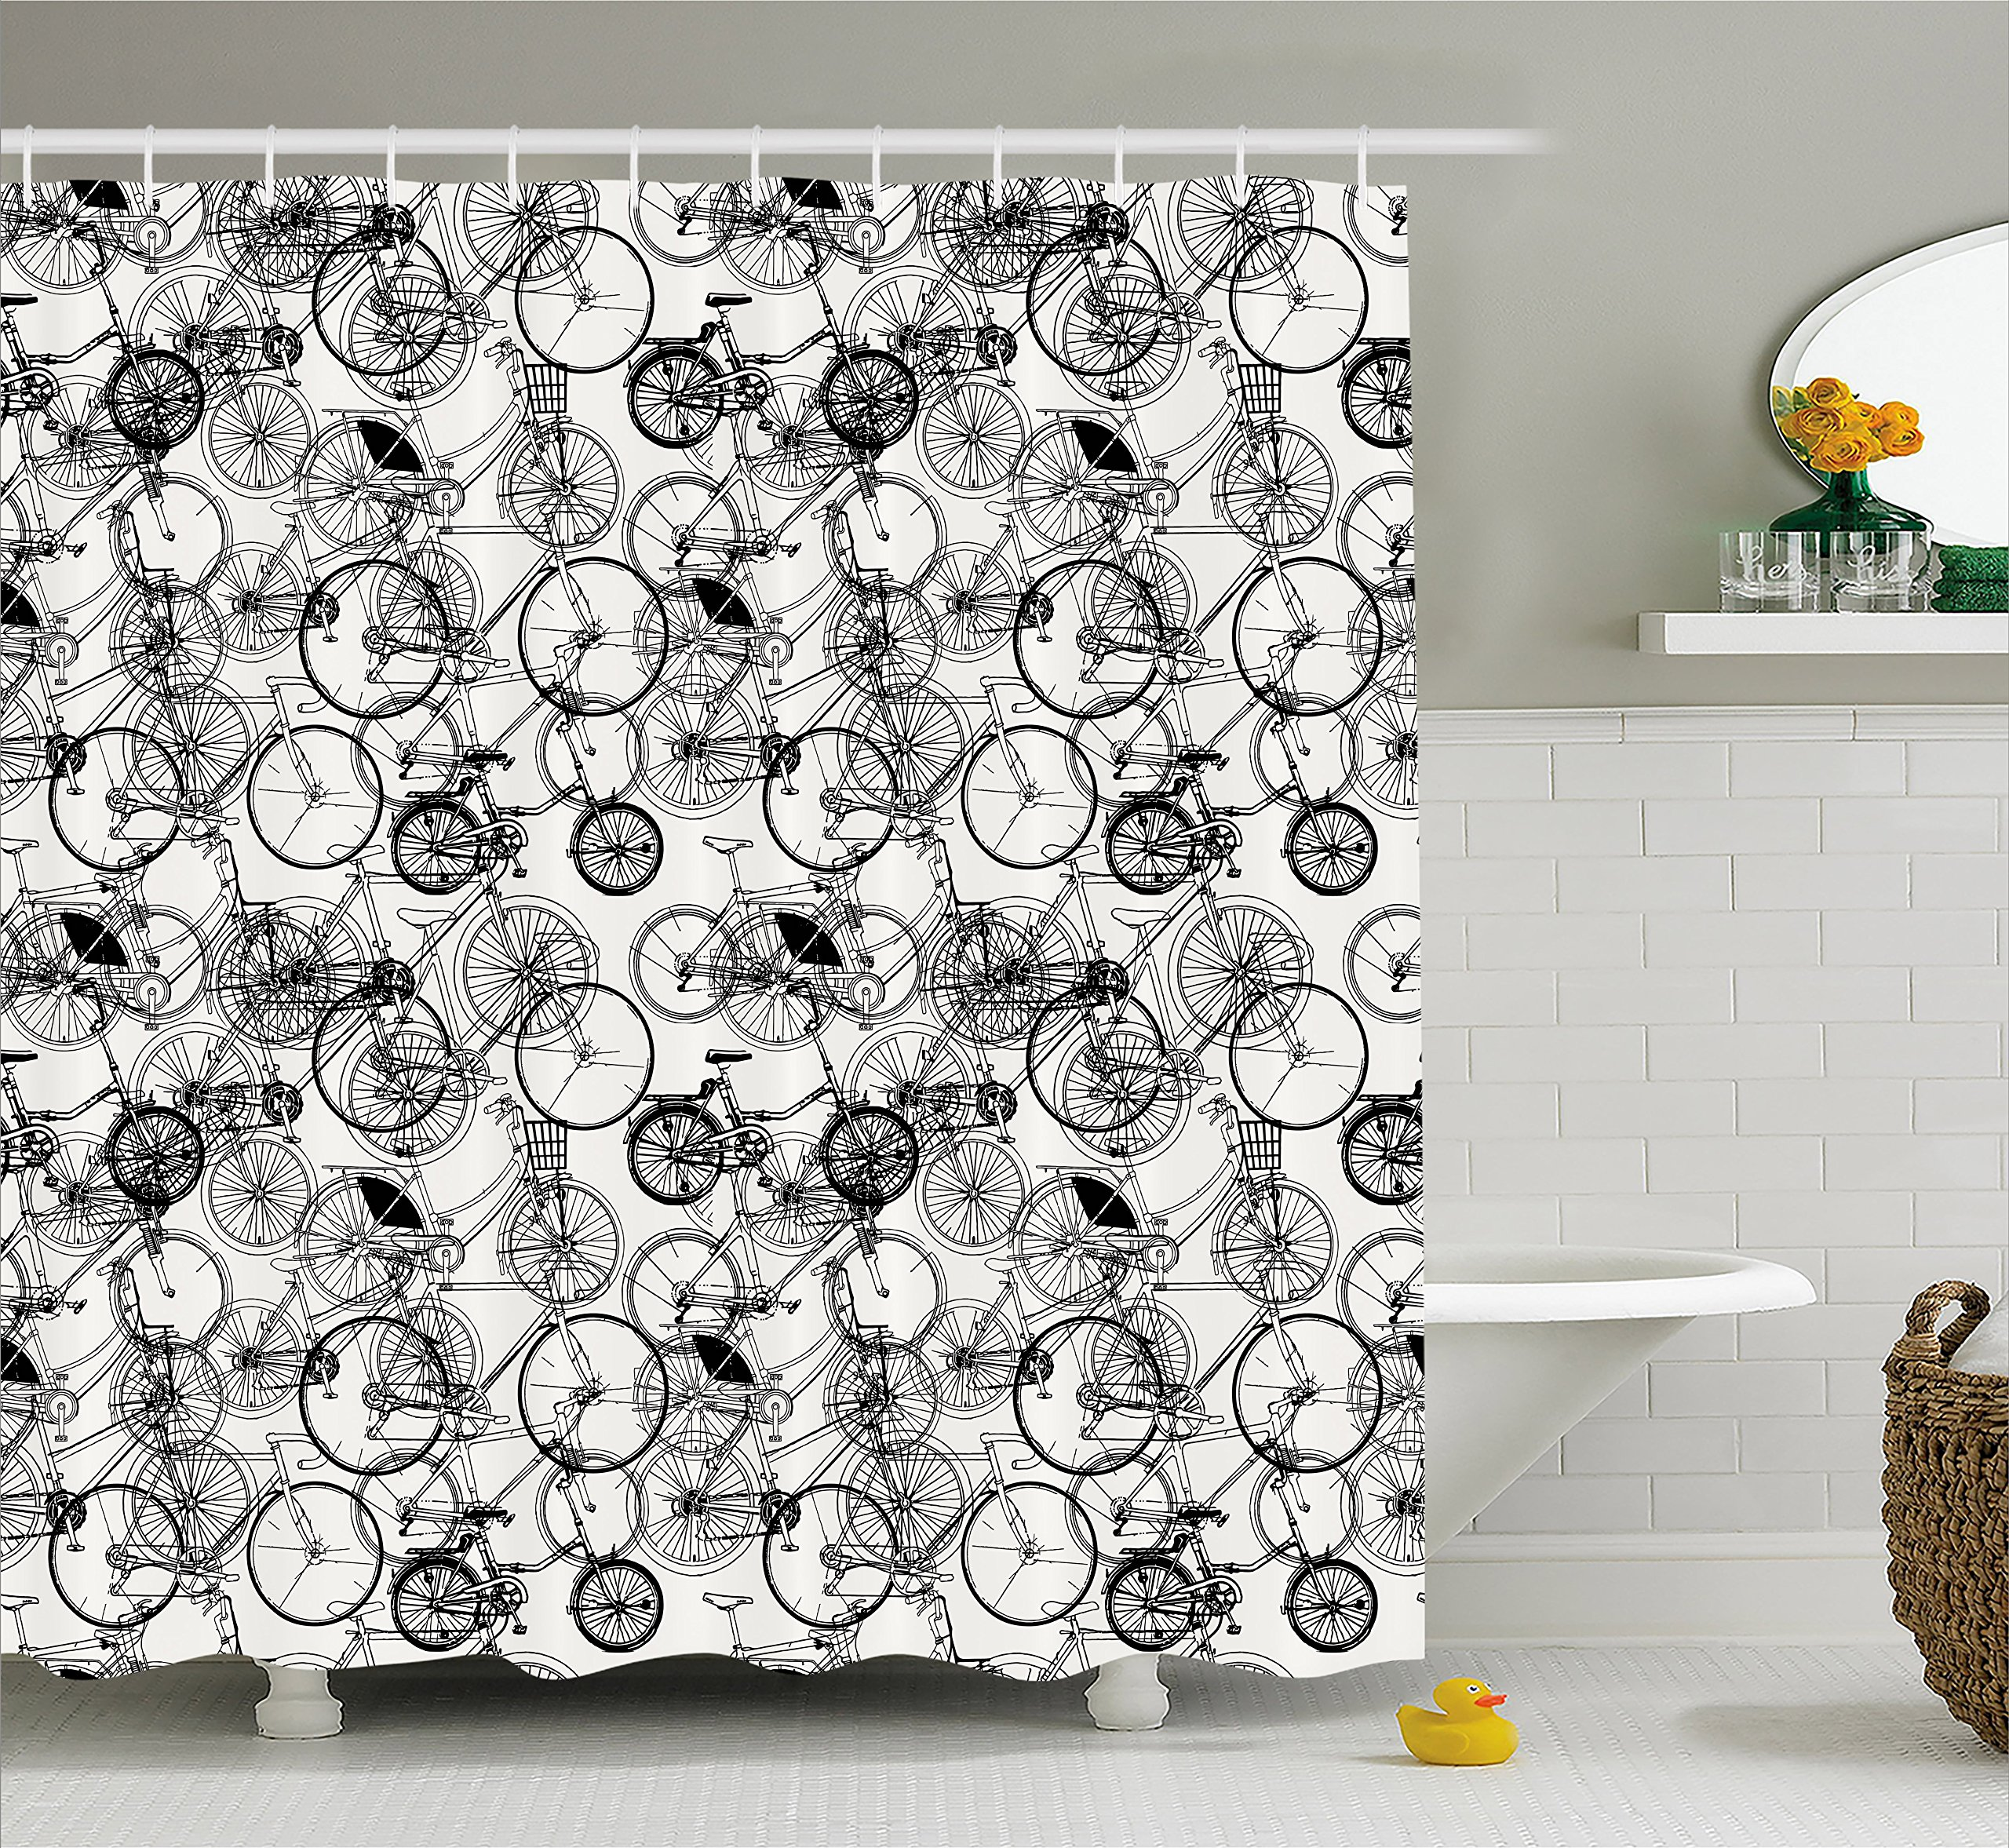 Ambesonne Sketchy Shower Curtain, Vintage Retro Bicycle Bike Hand Drawn Vector Abstract Design Image Artwork, Fabric Bathroom Decor Set with Hooks, 84 Inches Extra Long, Black and White